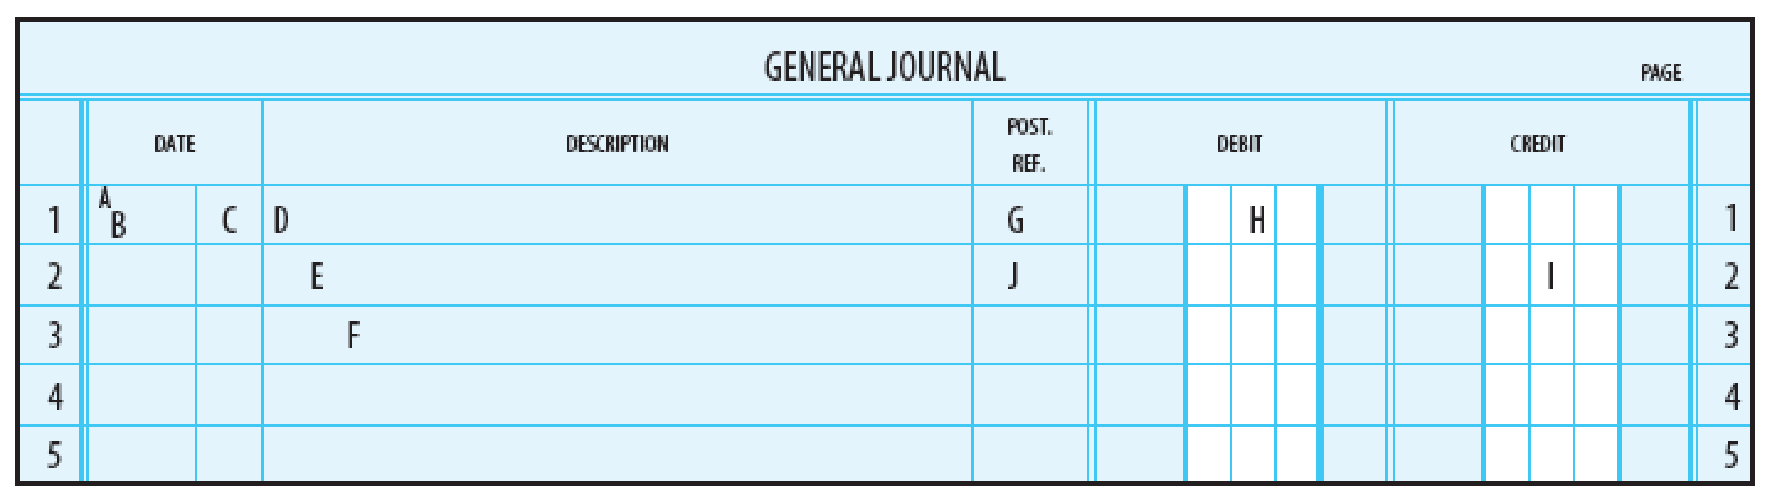 Chapter 4, Problem 2CE, Indicate the information that would be entered for each of the lettered items in the general journal